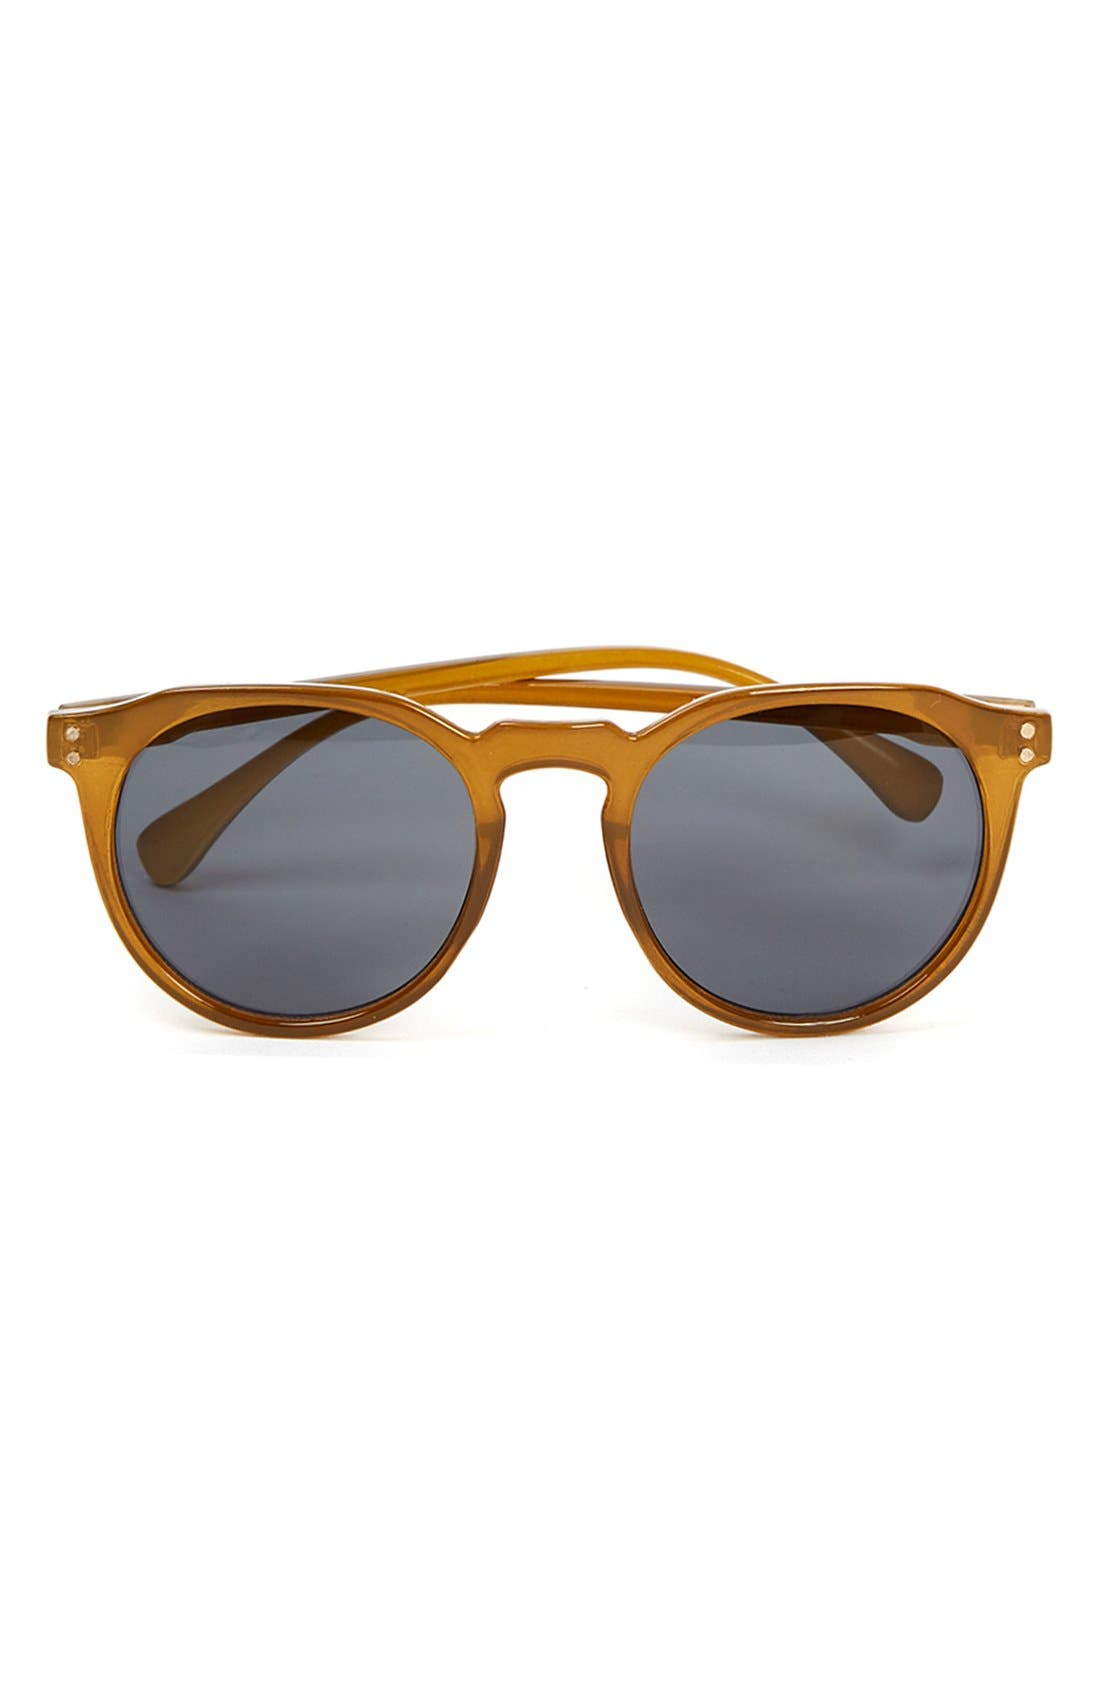 Main Image - Topman 50mm Round Sunglasses